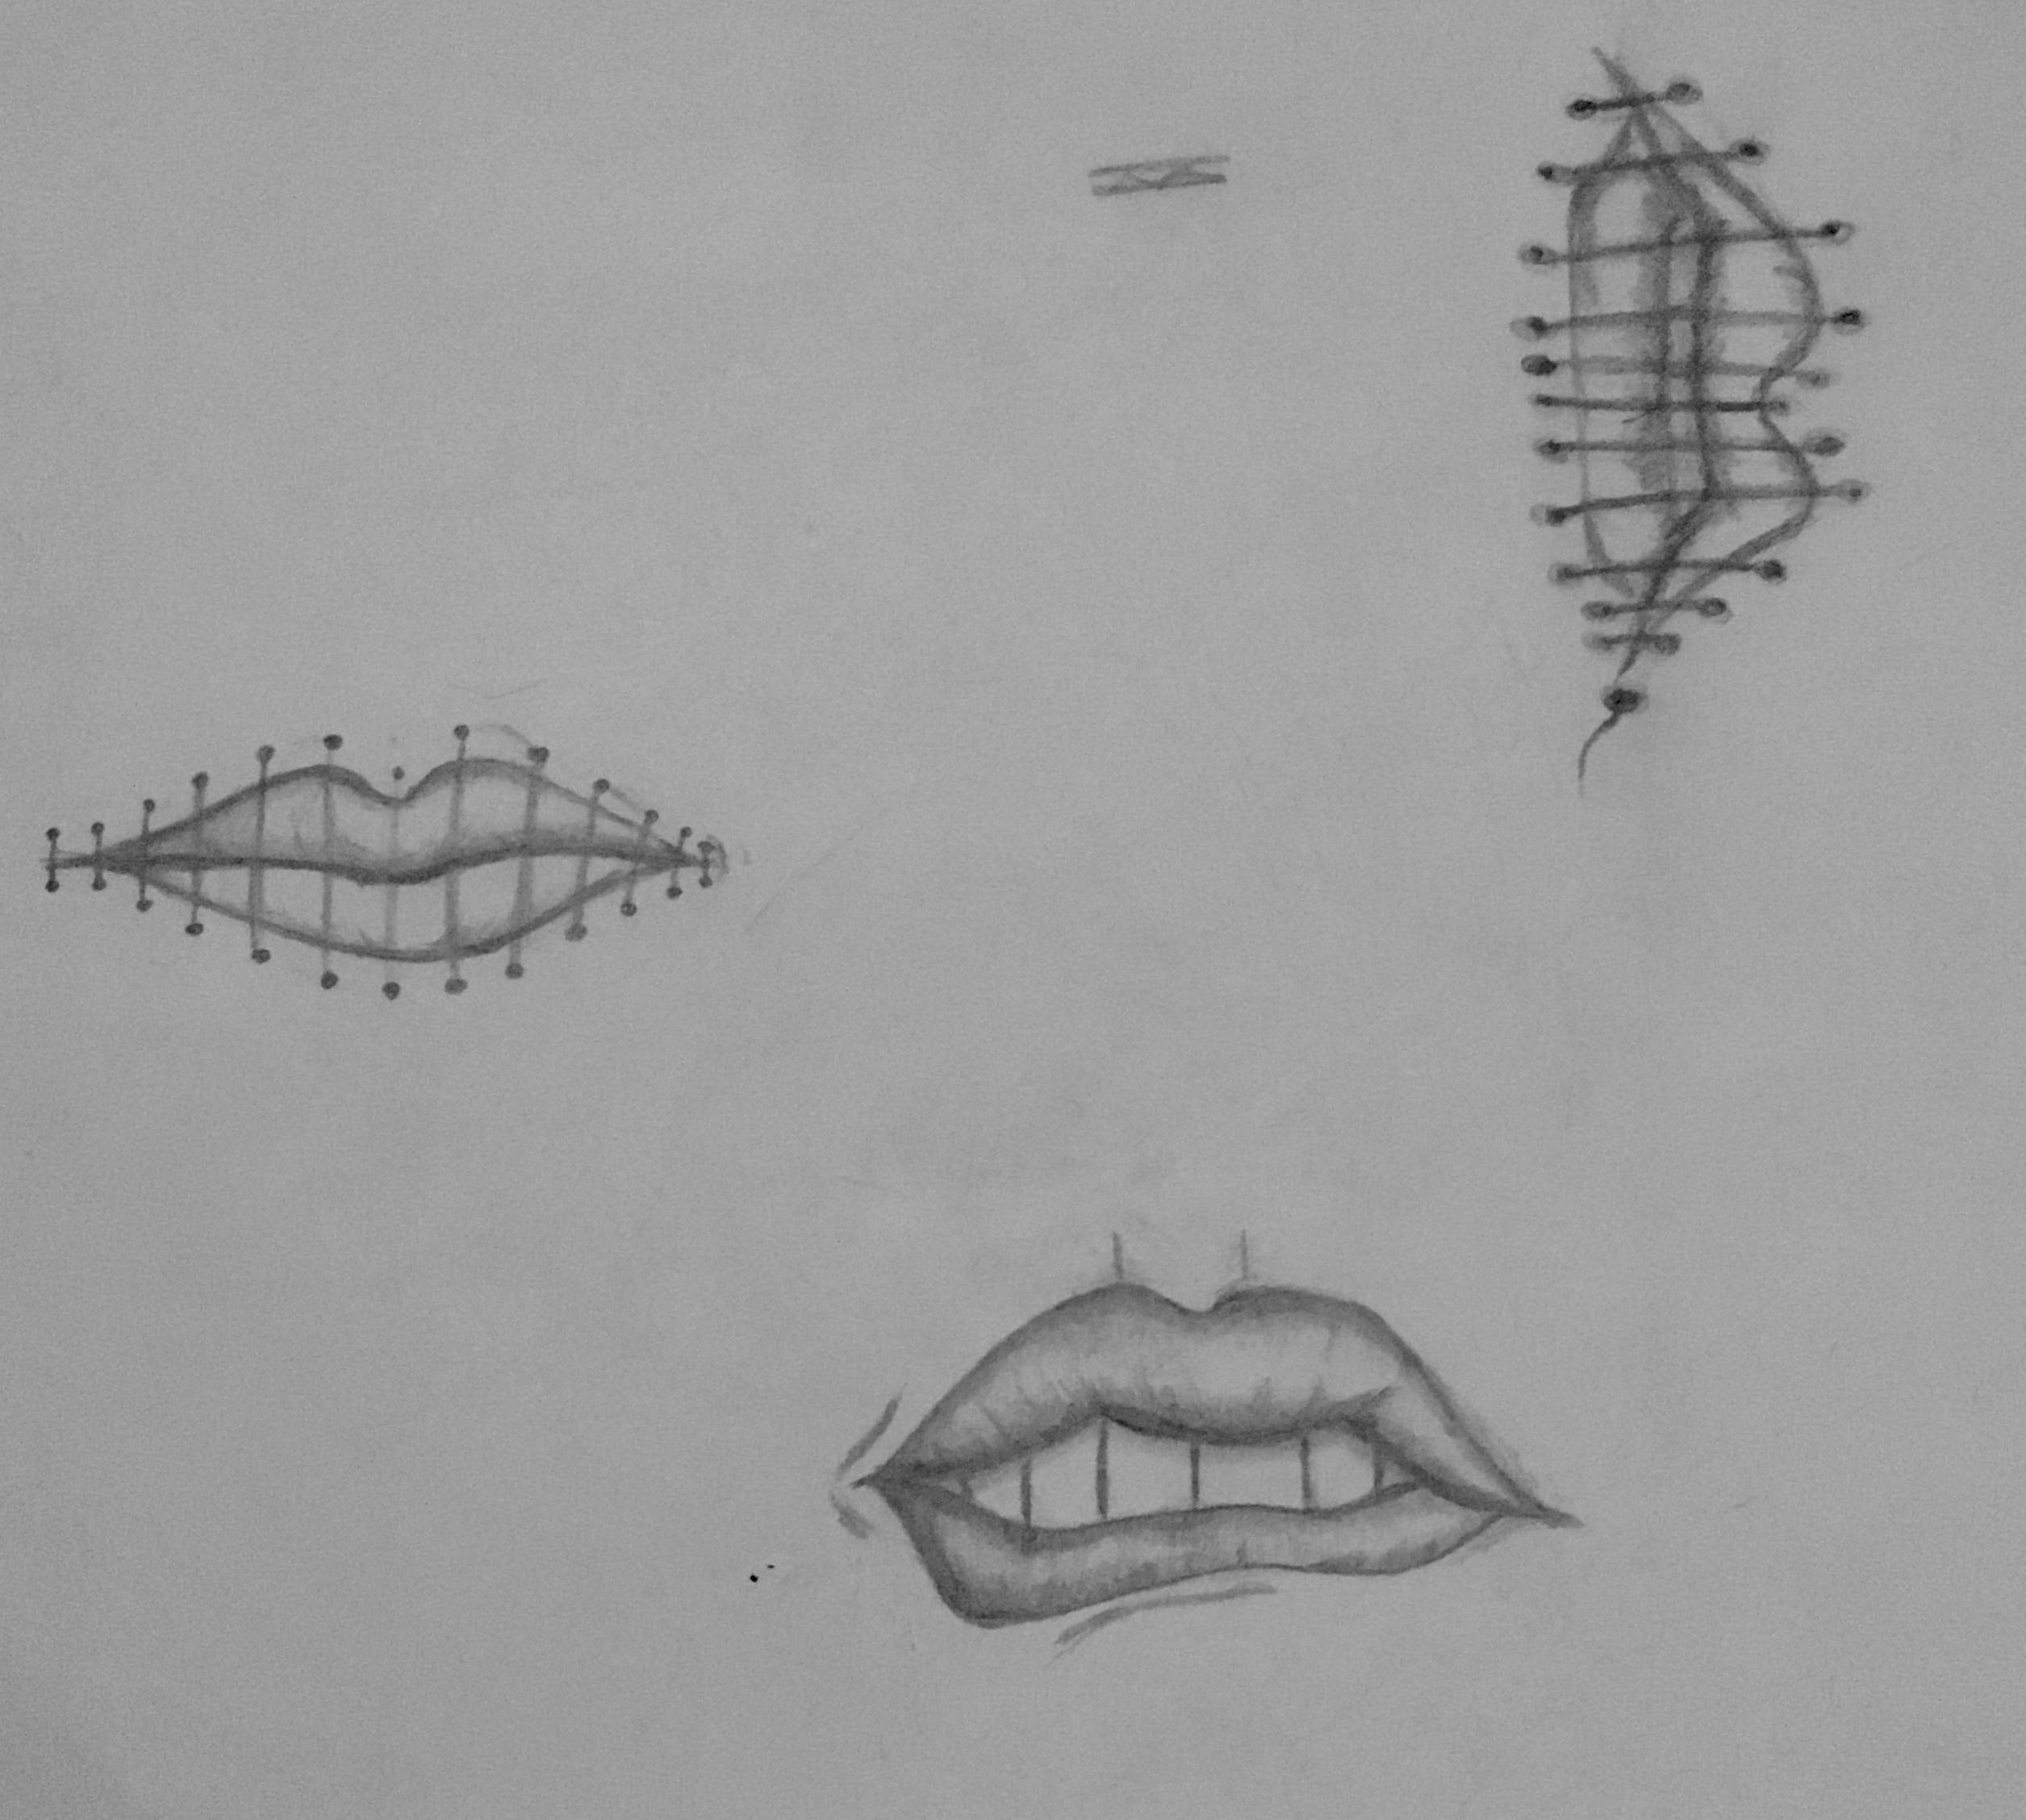 Sample from an illustrative mouth exploration.